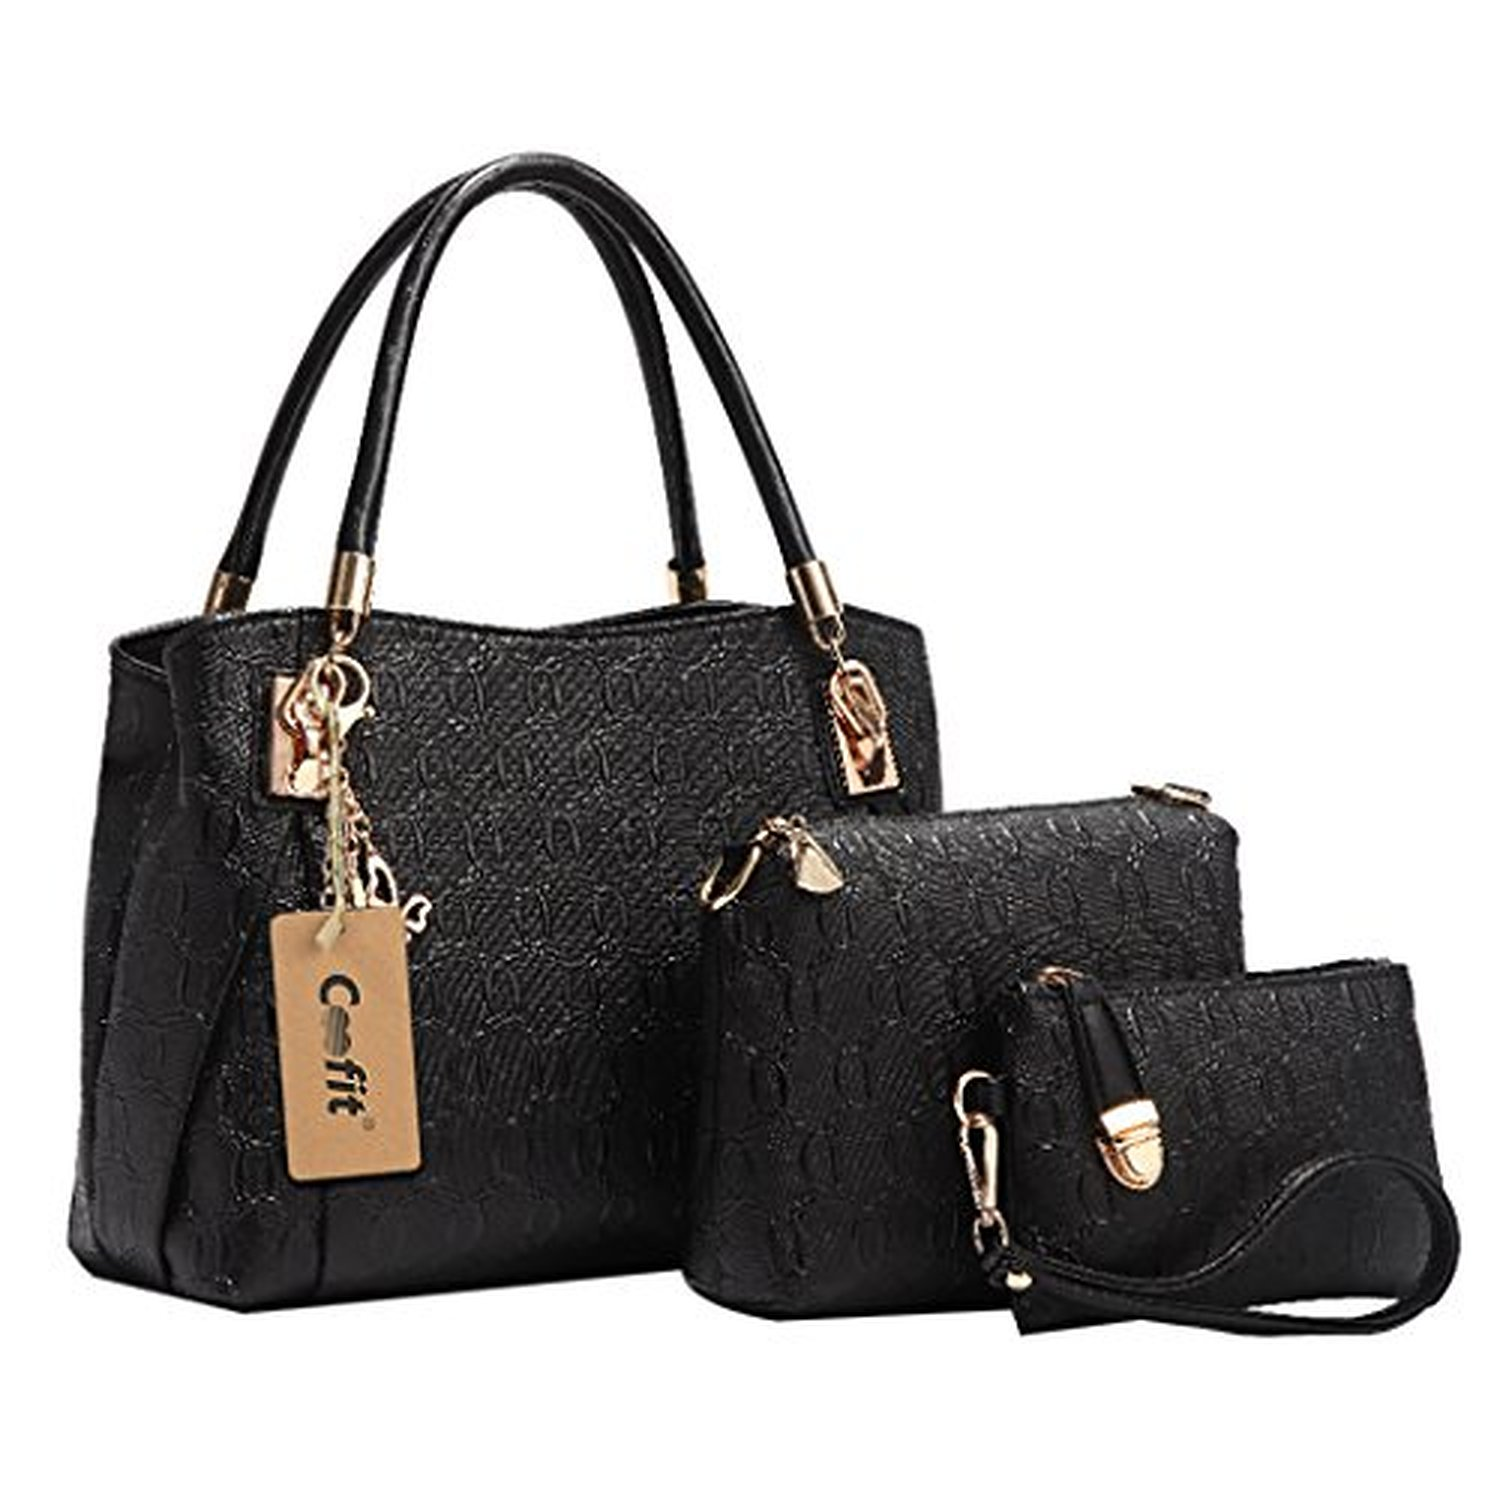 coofit lot de 3 sacs pour femmes en cuir vintage sac main sac bandouli re pochette noir 2016. Black Bedroom Furniture Sets. Home Design Ideas